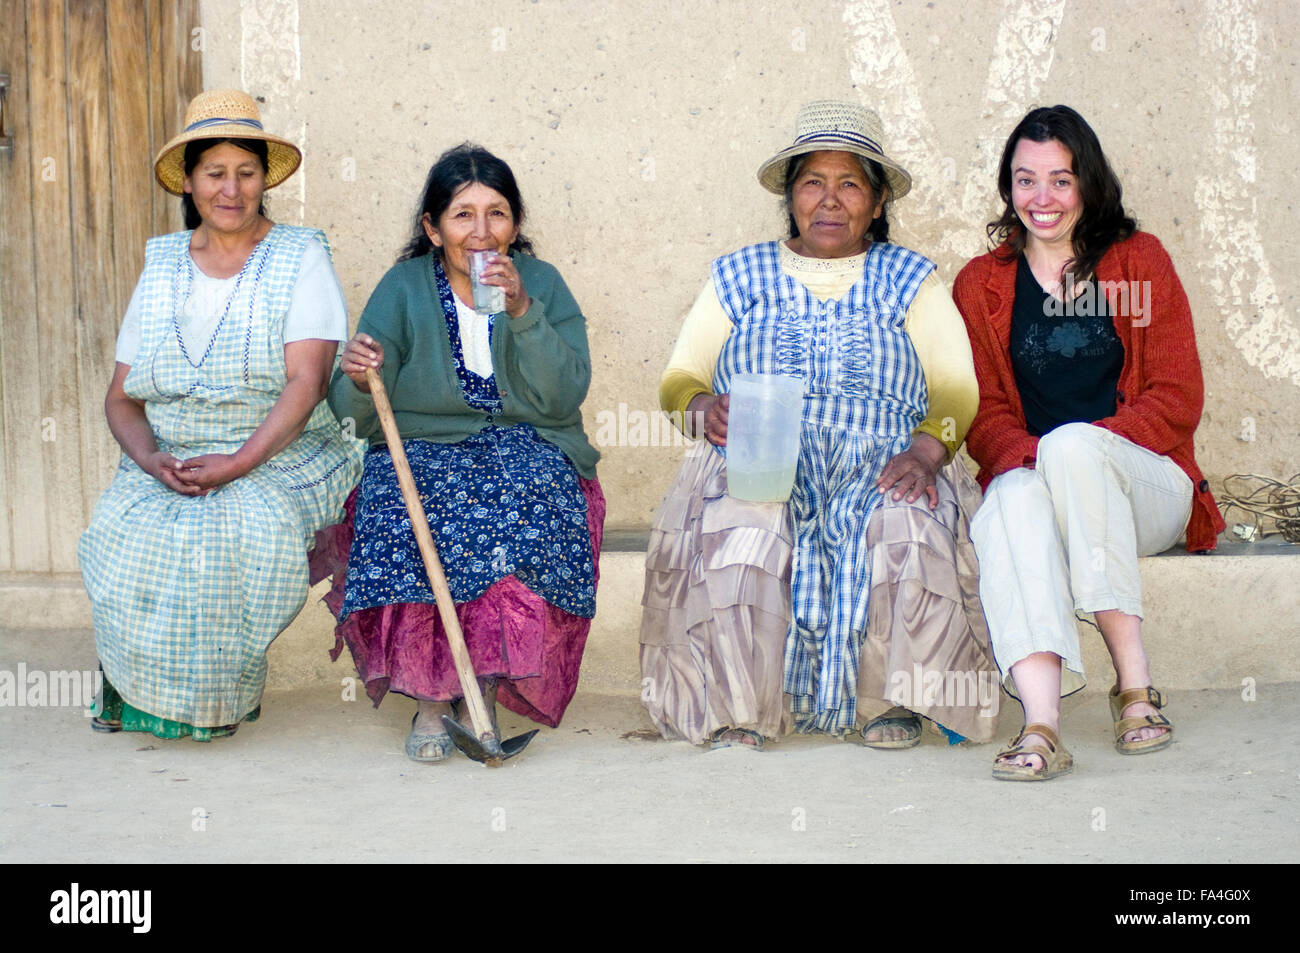 4 women, three Aymaran women local to Luribay, Bolivia, South America, sit smiling and drinking lemonade together. - Stock Image